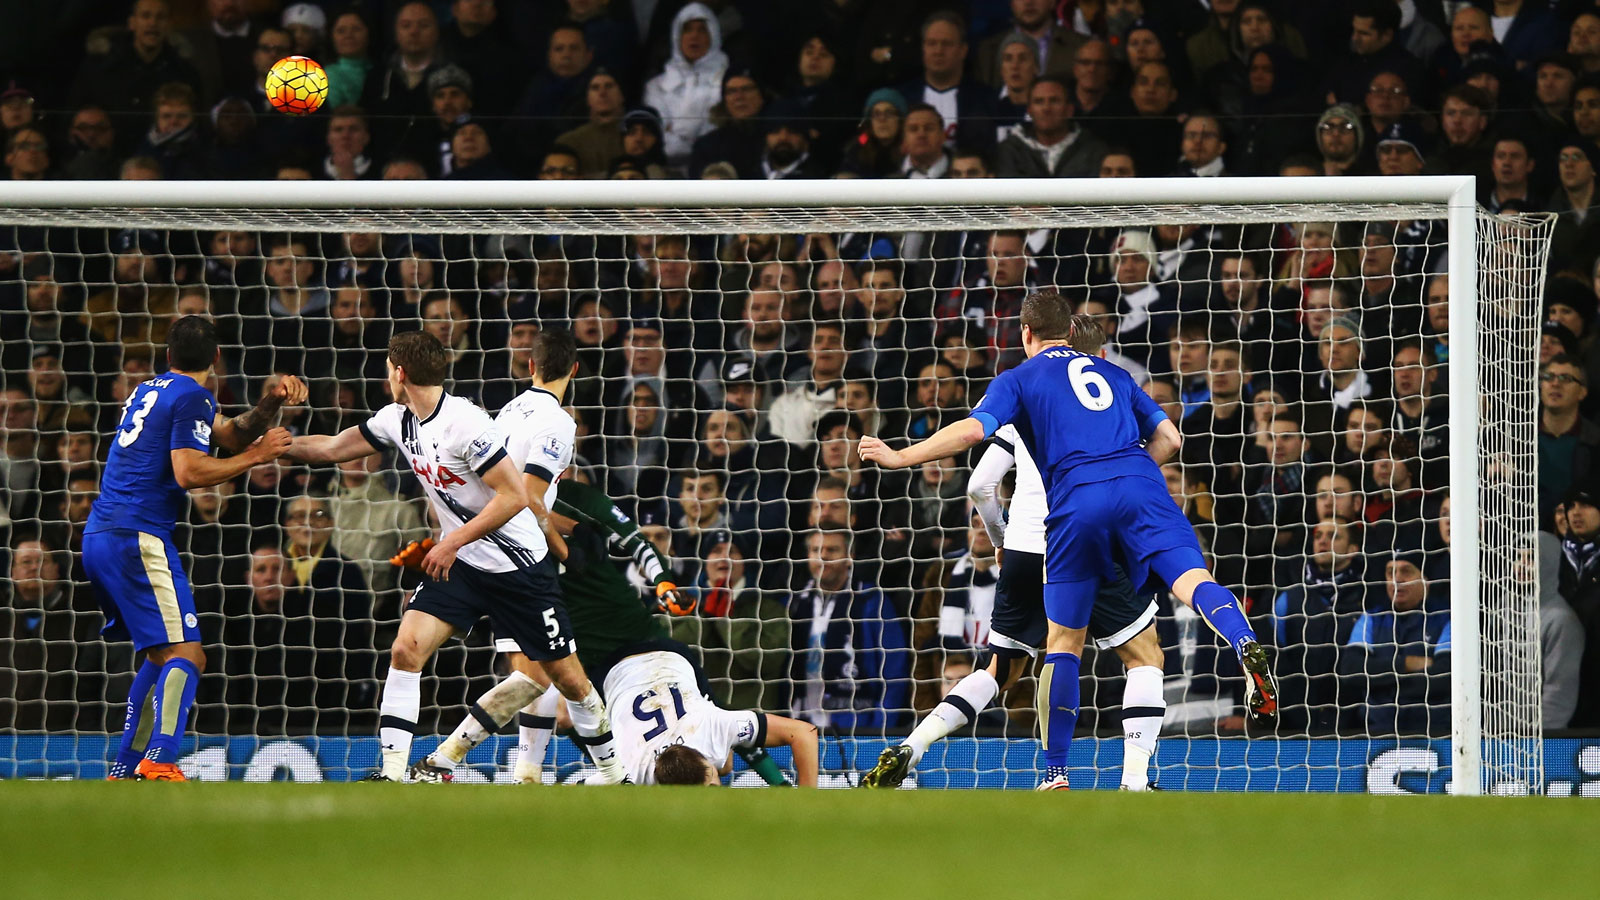 Defender Robert Huth's perfect 83rd-minute header from Christian Fuchs's corner–his first goal since last April–gave Leicester a 1-0 win over Tottenham at White Hart Lane, snapping a three-game winless run. Given how the title race would come down to the two clubs, the point swing has proven to be massive.